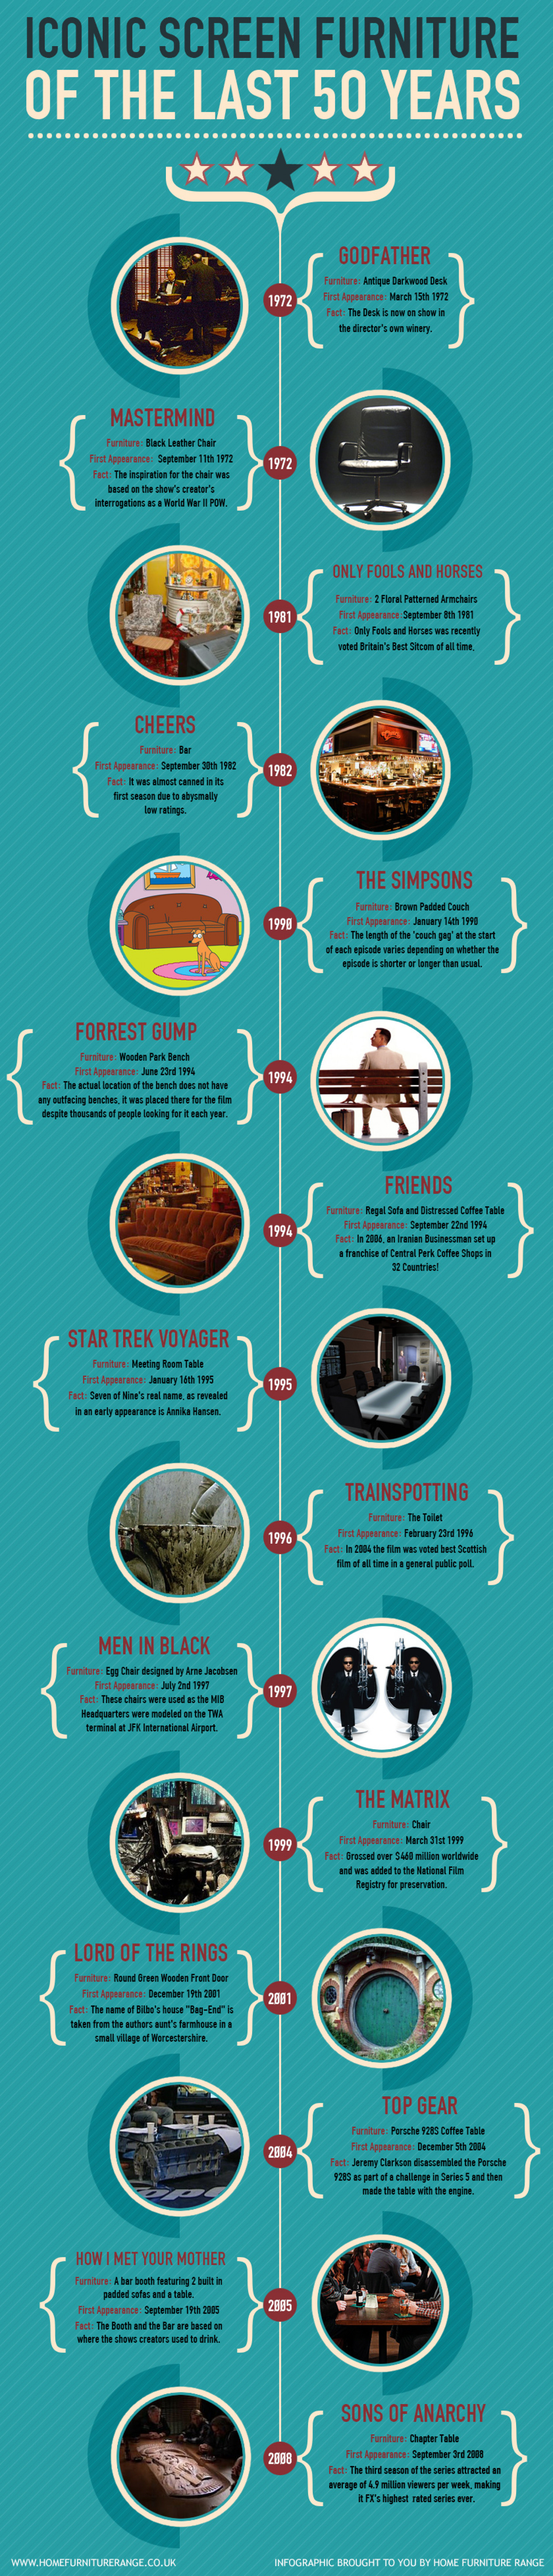 Iconic Screen Furniture of the last 50 Years Infographic